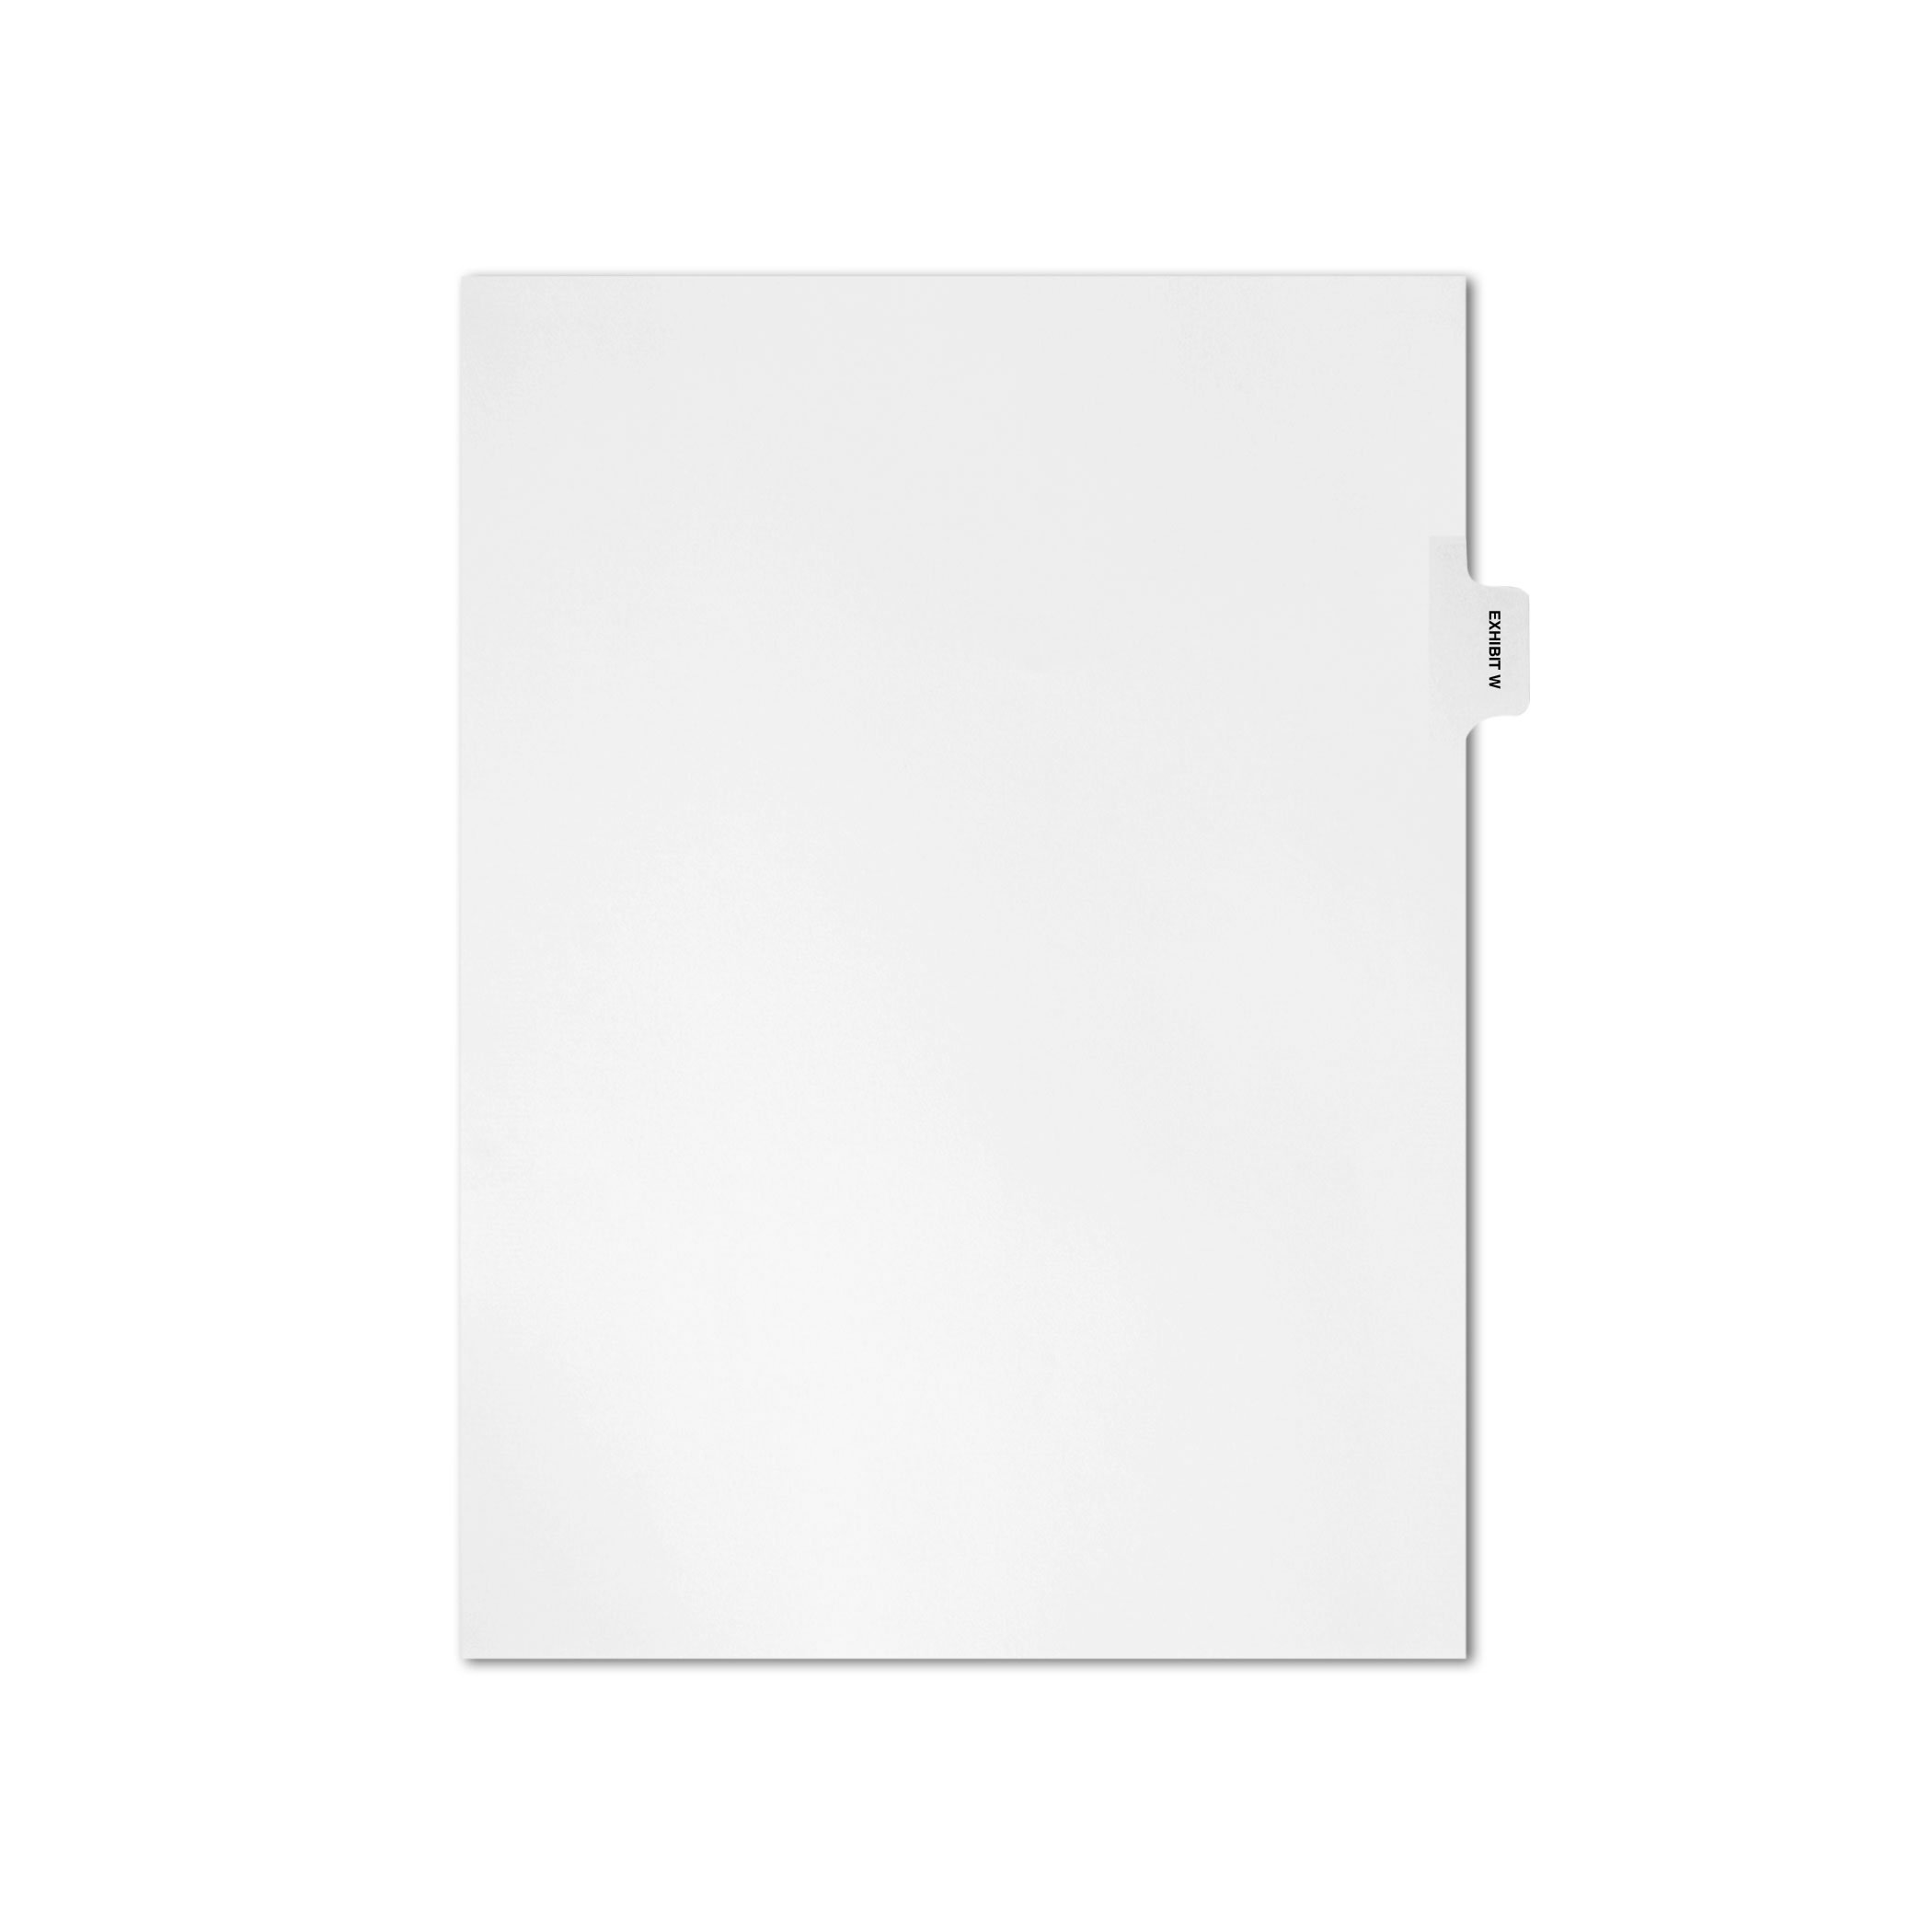 AMZfiling Individual Legal Index Tab Dividers, Compatible with Avery- Exhibit W, Side Tabs, Letter Size, White, Position 3 (25 Sheets/pkg)